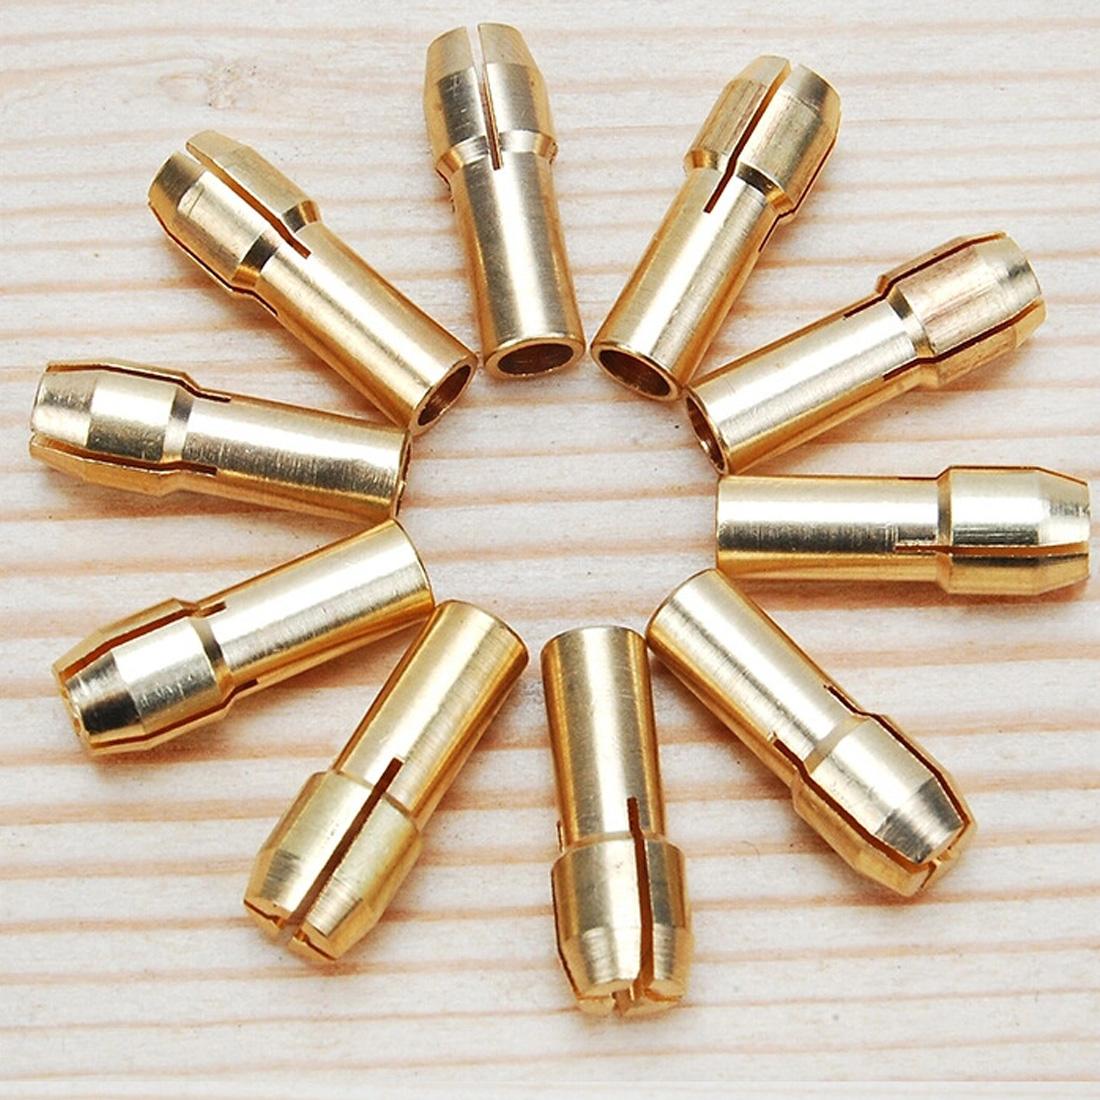 New Arrival 10Pcs /set Brass Drill Chucks Collet Bits 0.5-3.2mm 4.3mm Shank For Dremel Rotary Tool